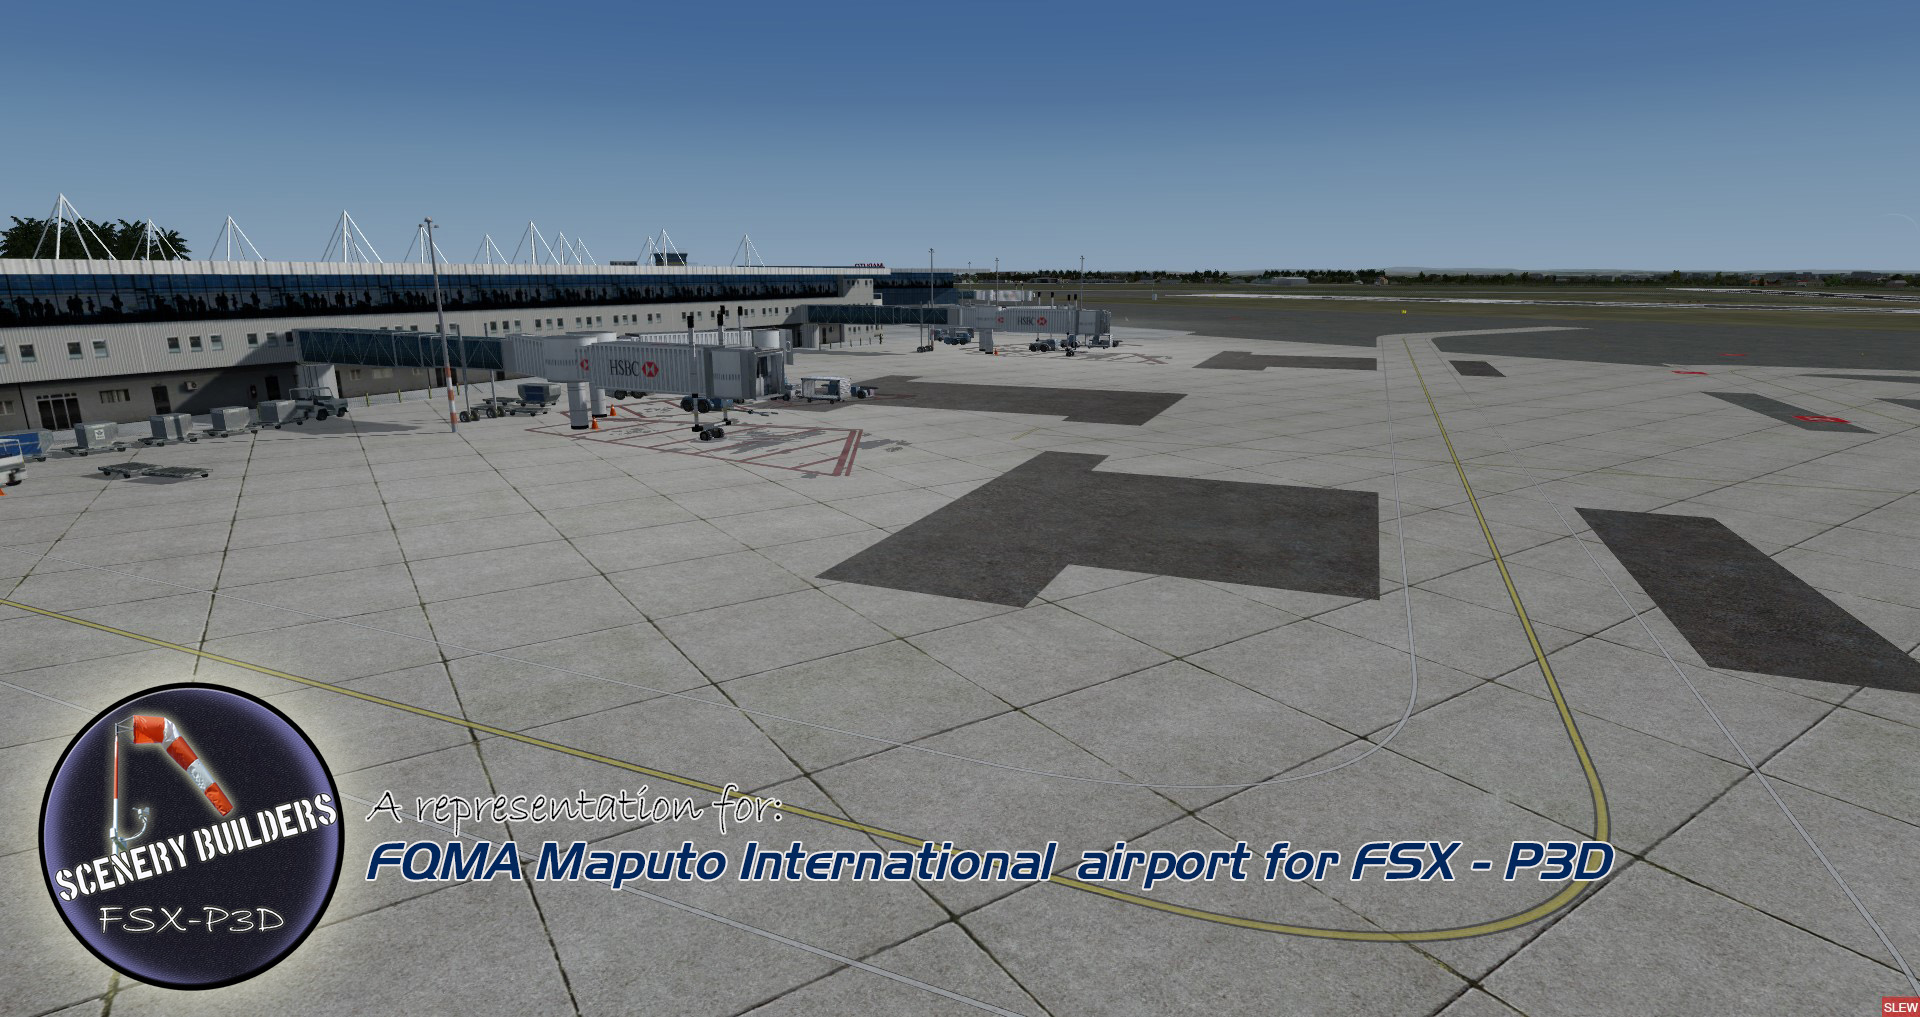 FSXCENERY - FQMA MAPUTO INTERNATIONAL AIRPORT FSX P3D